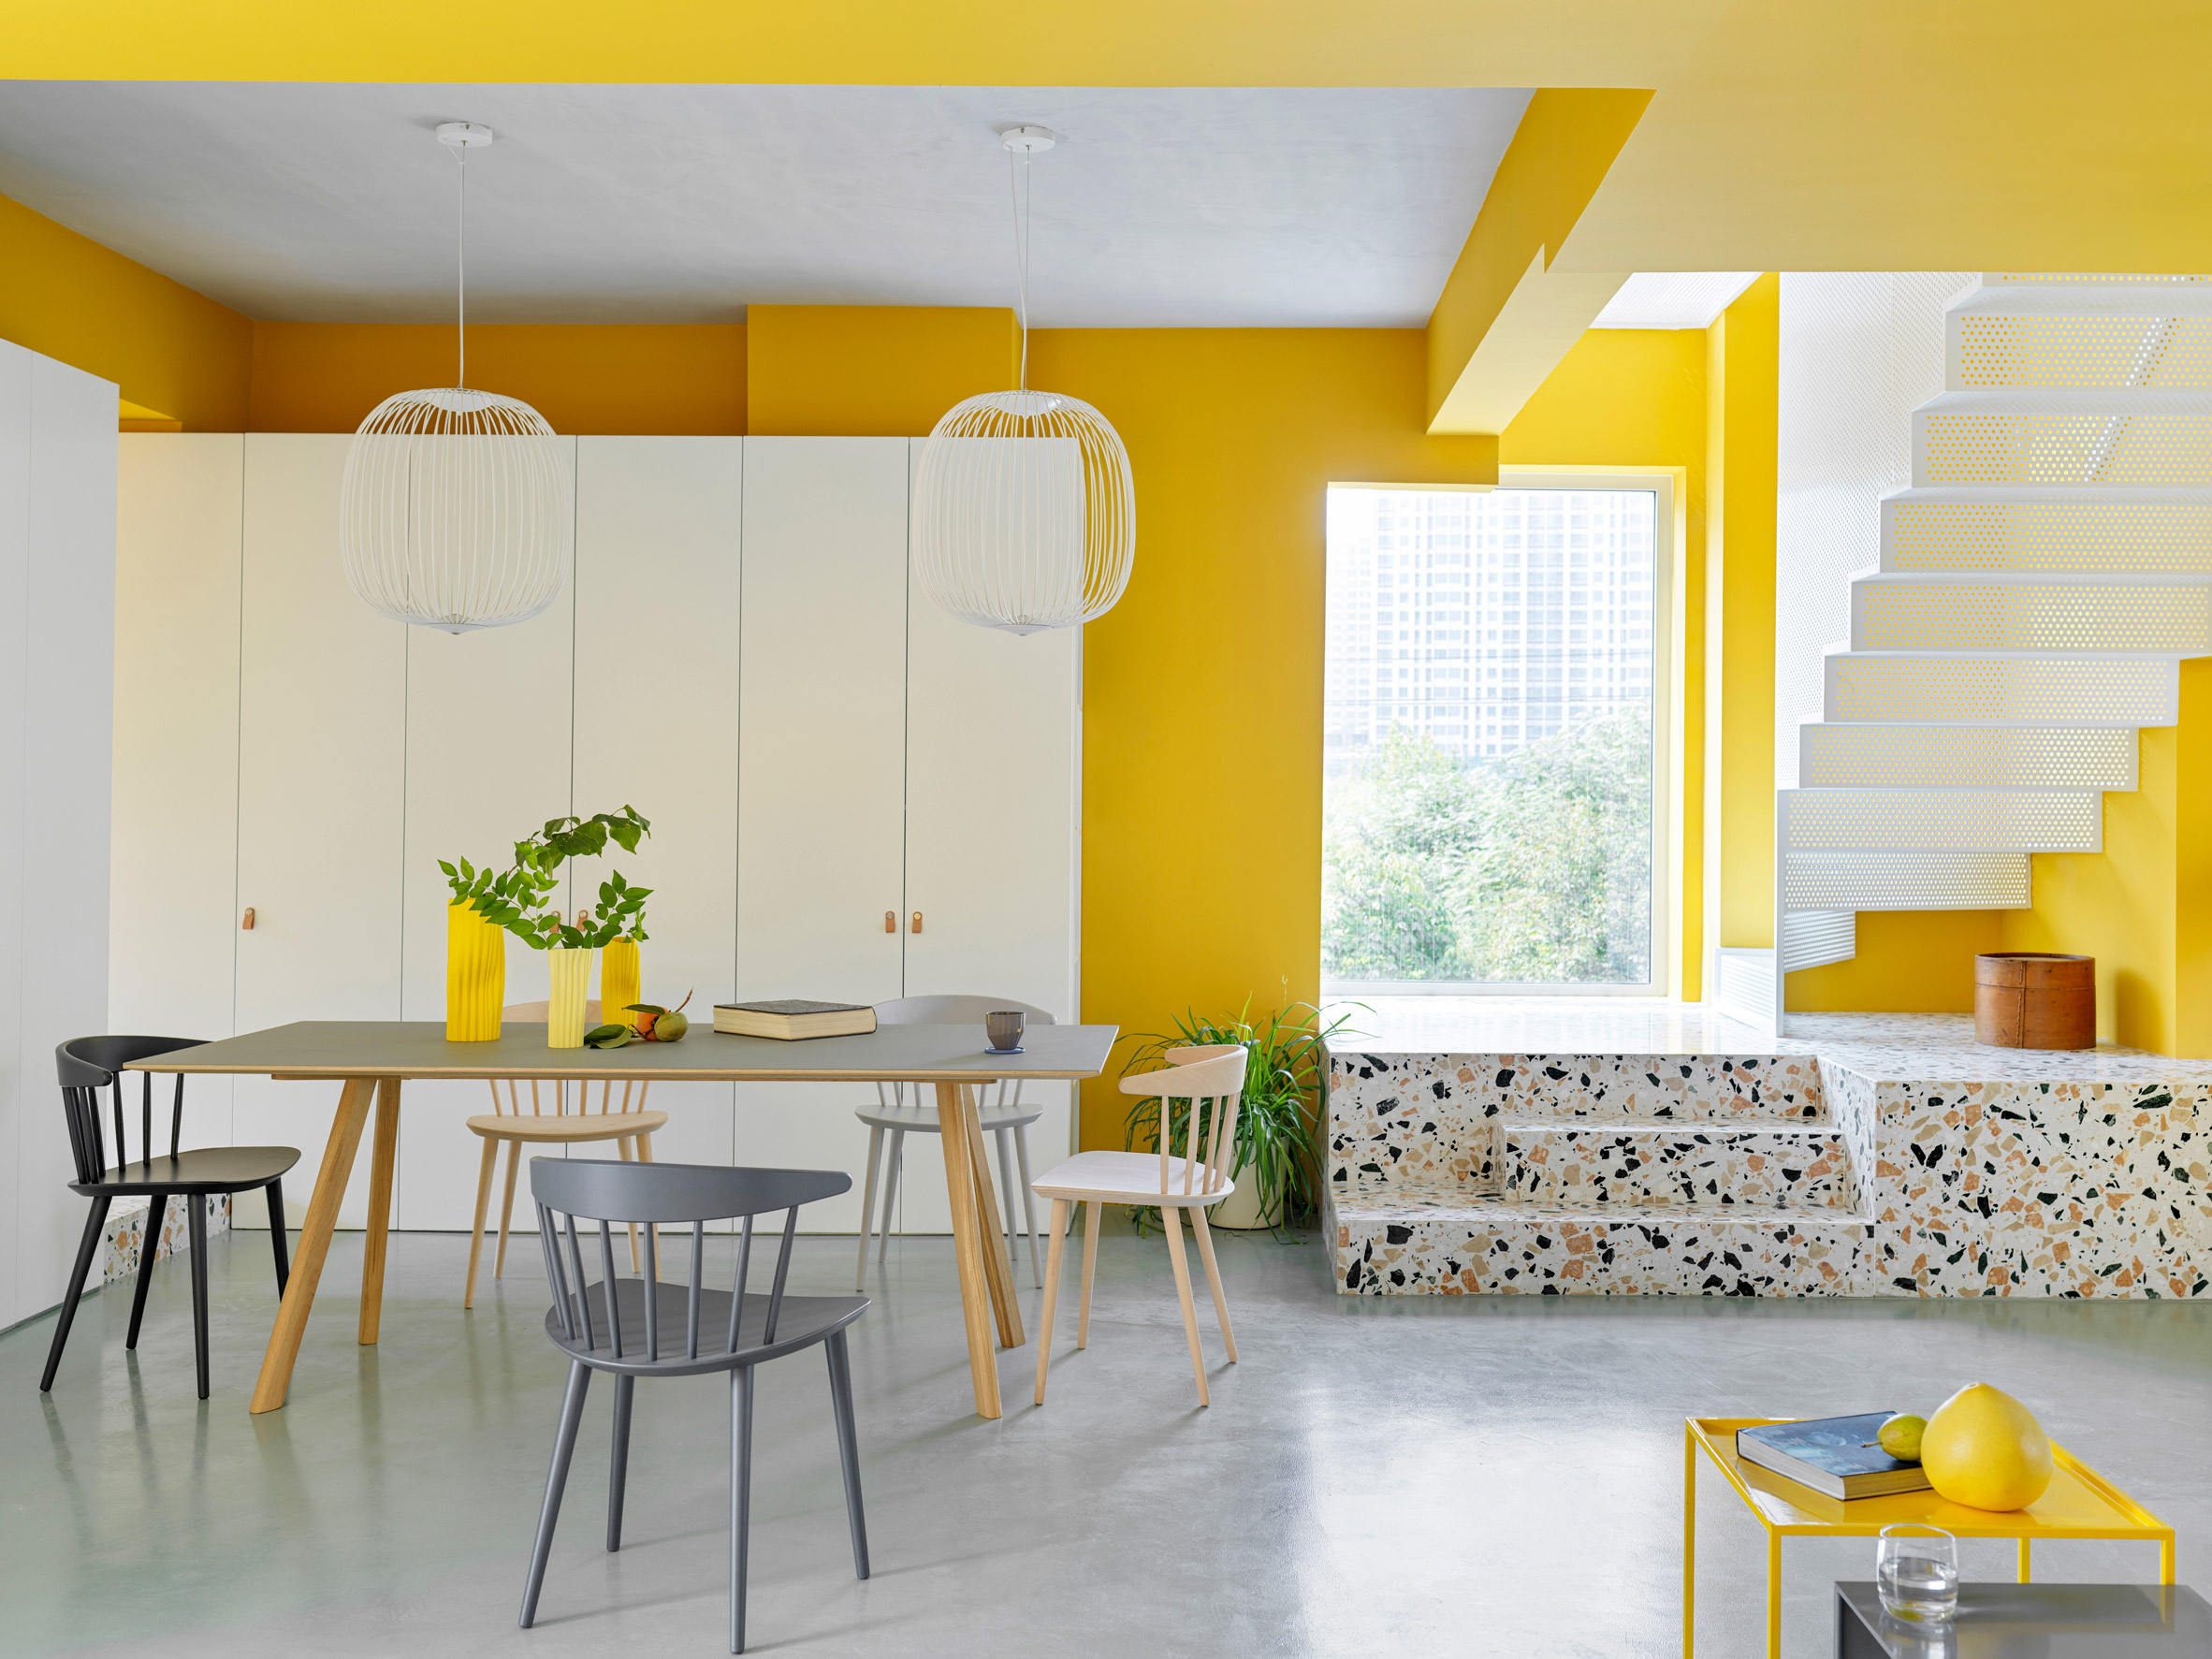 Living room with yellow walls, white furniture, and terrazzo details.